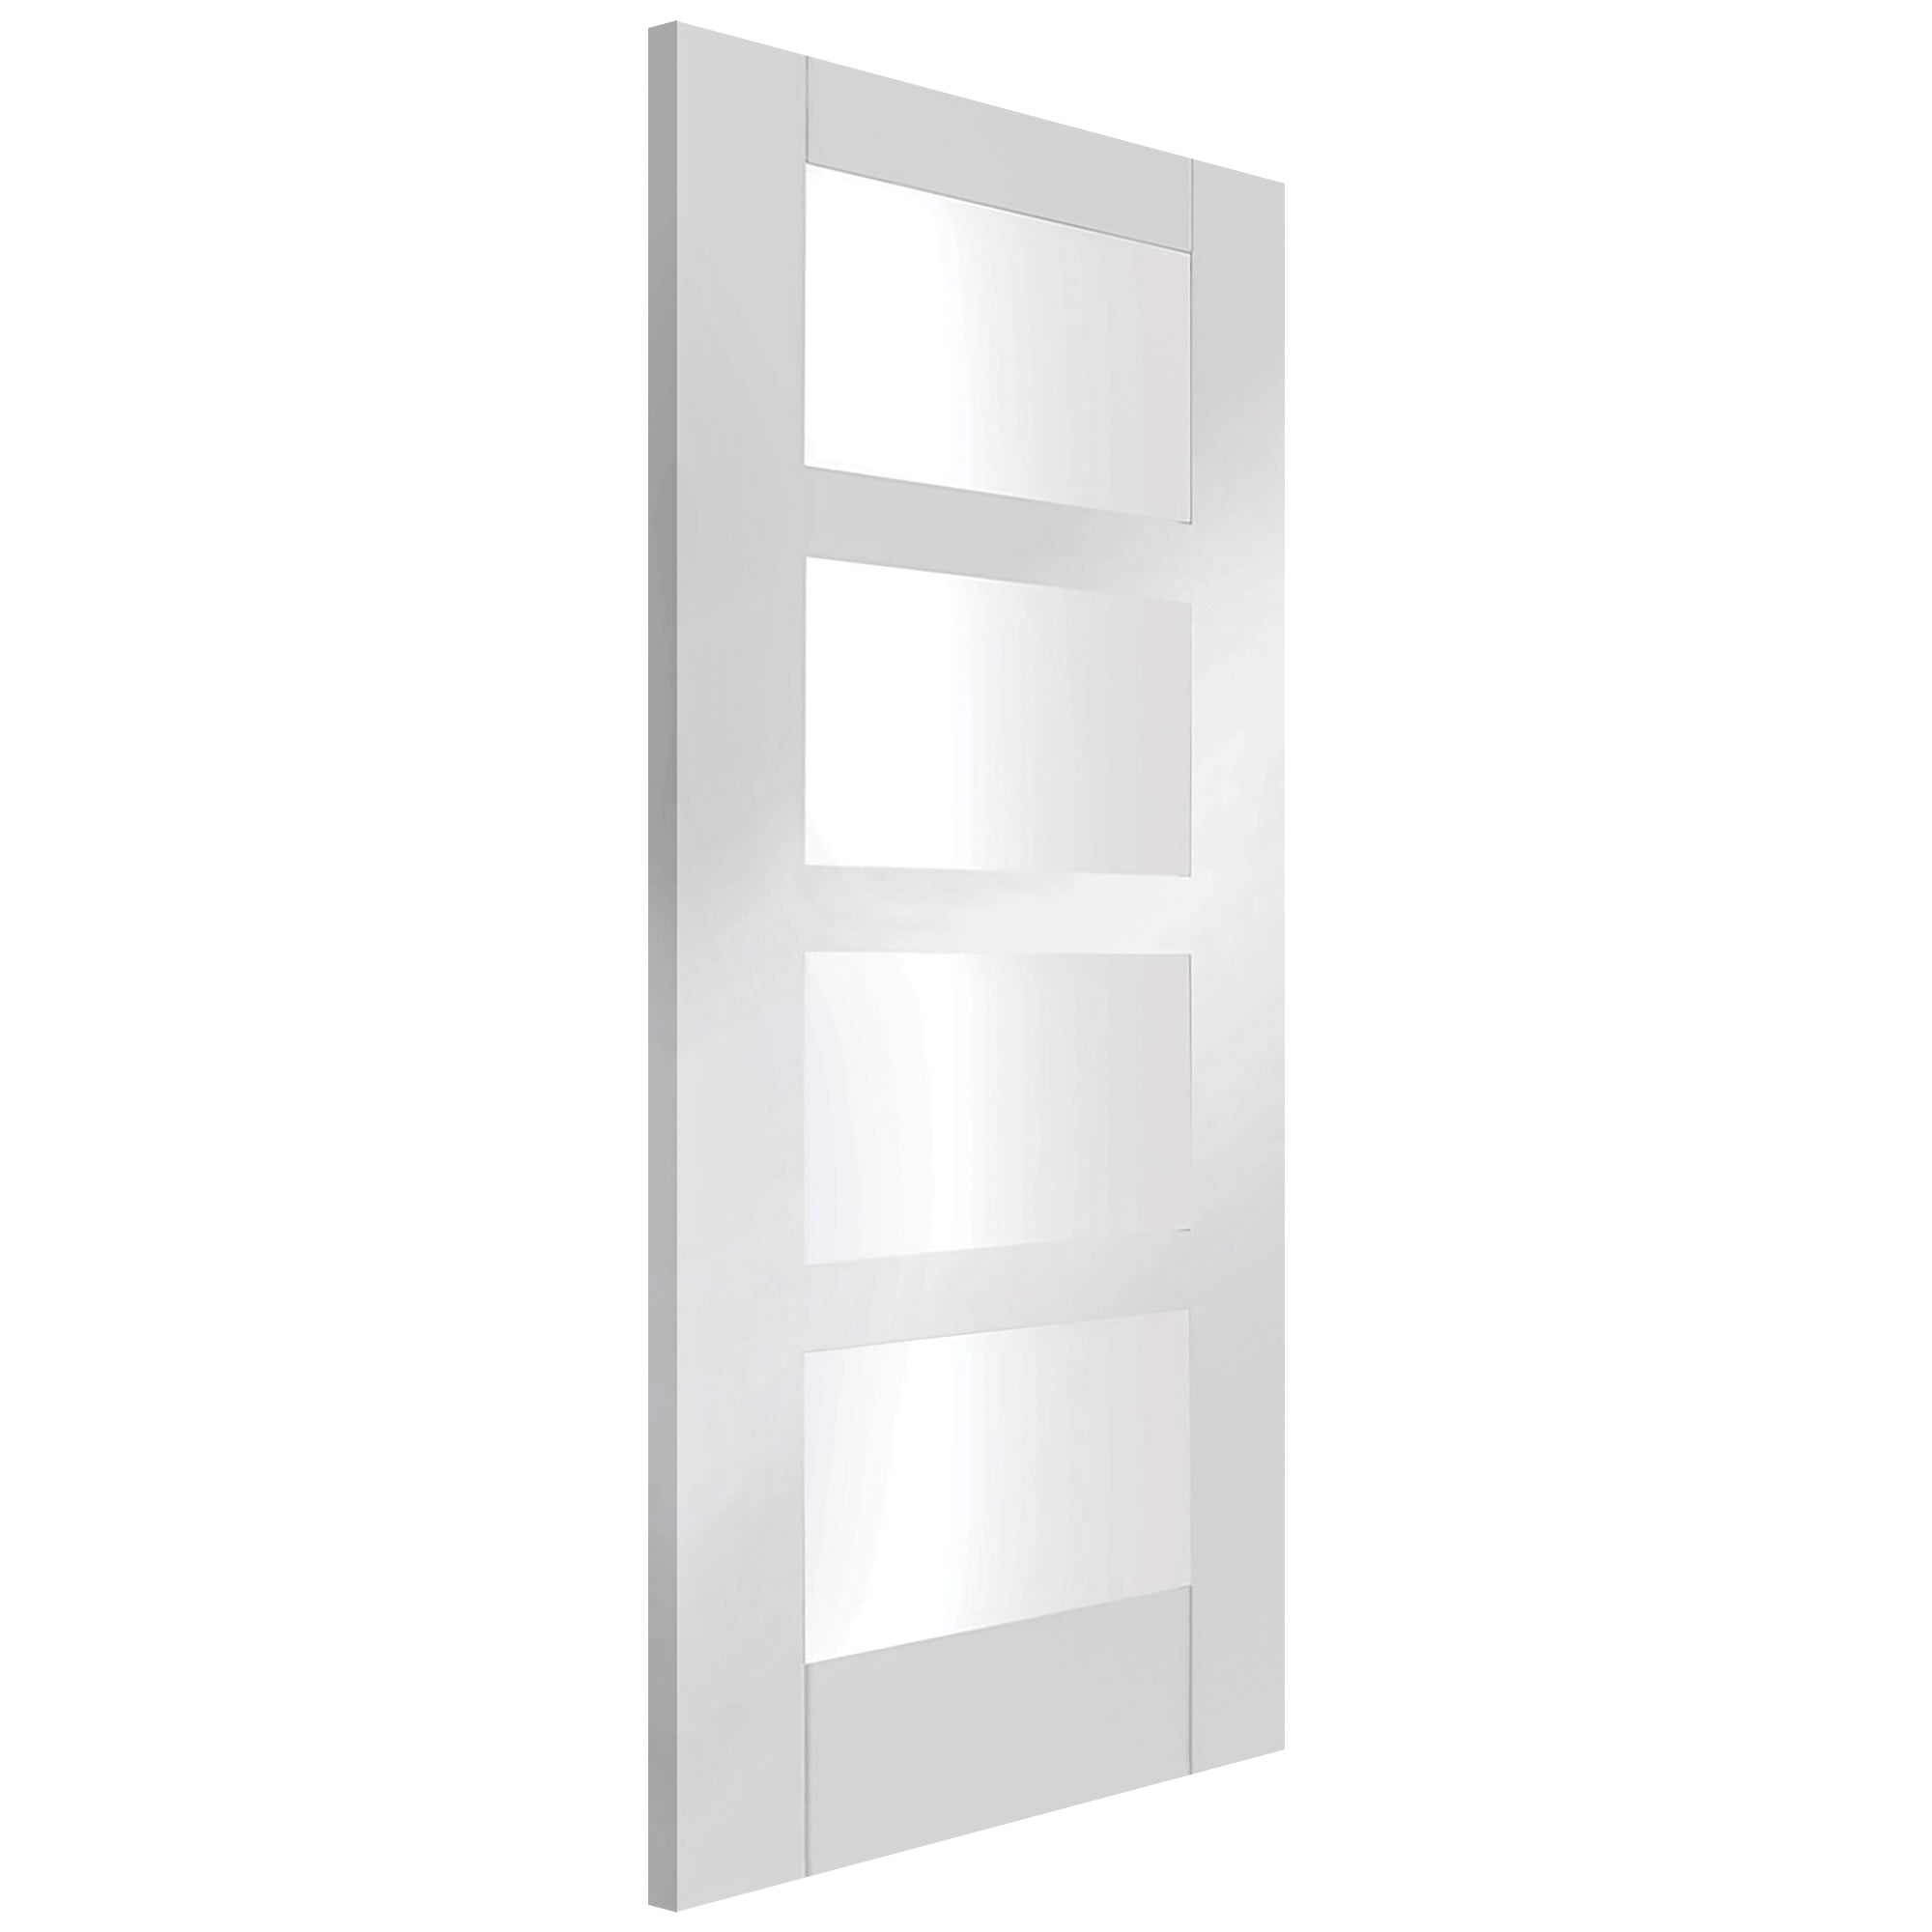 Xl joinery internal white primed shaker 4 panel with clear glass door